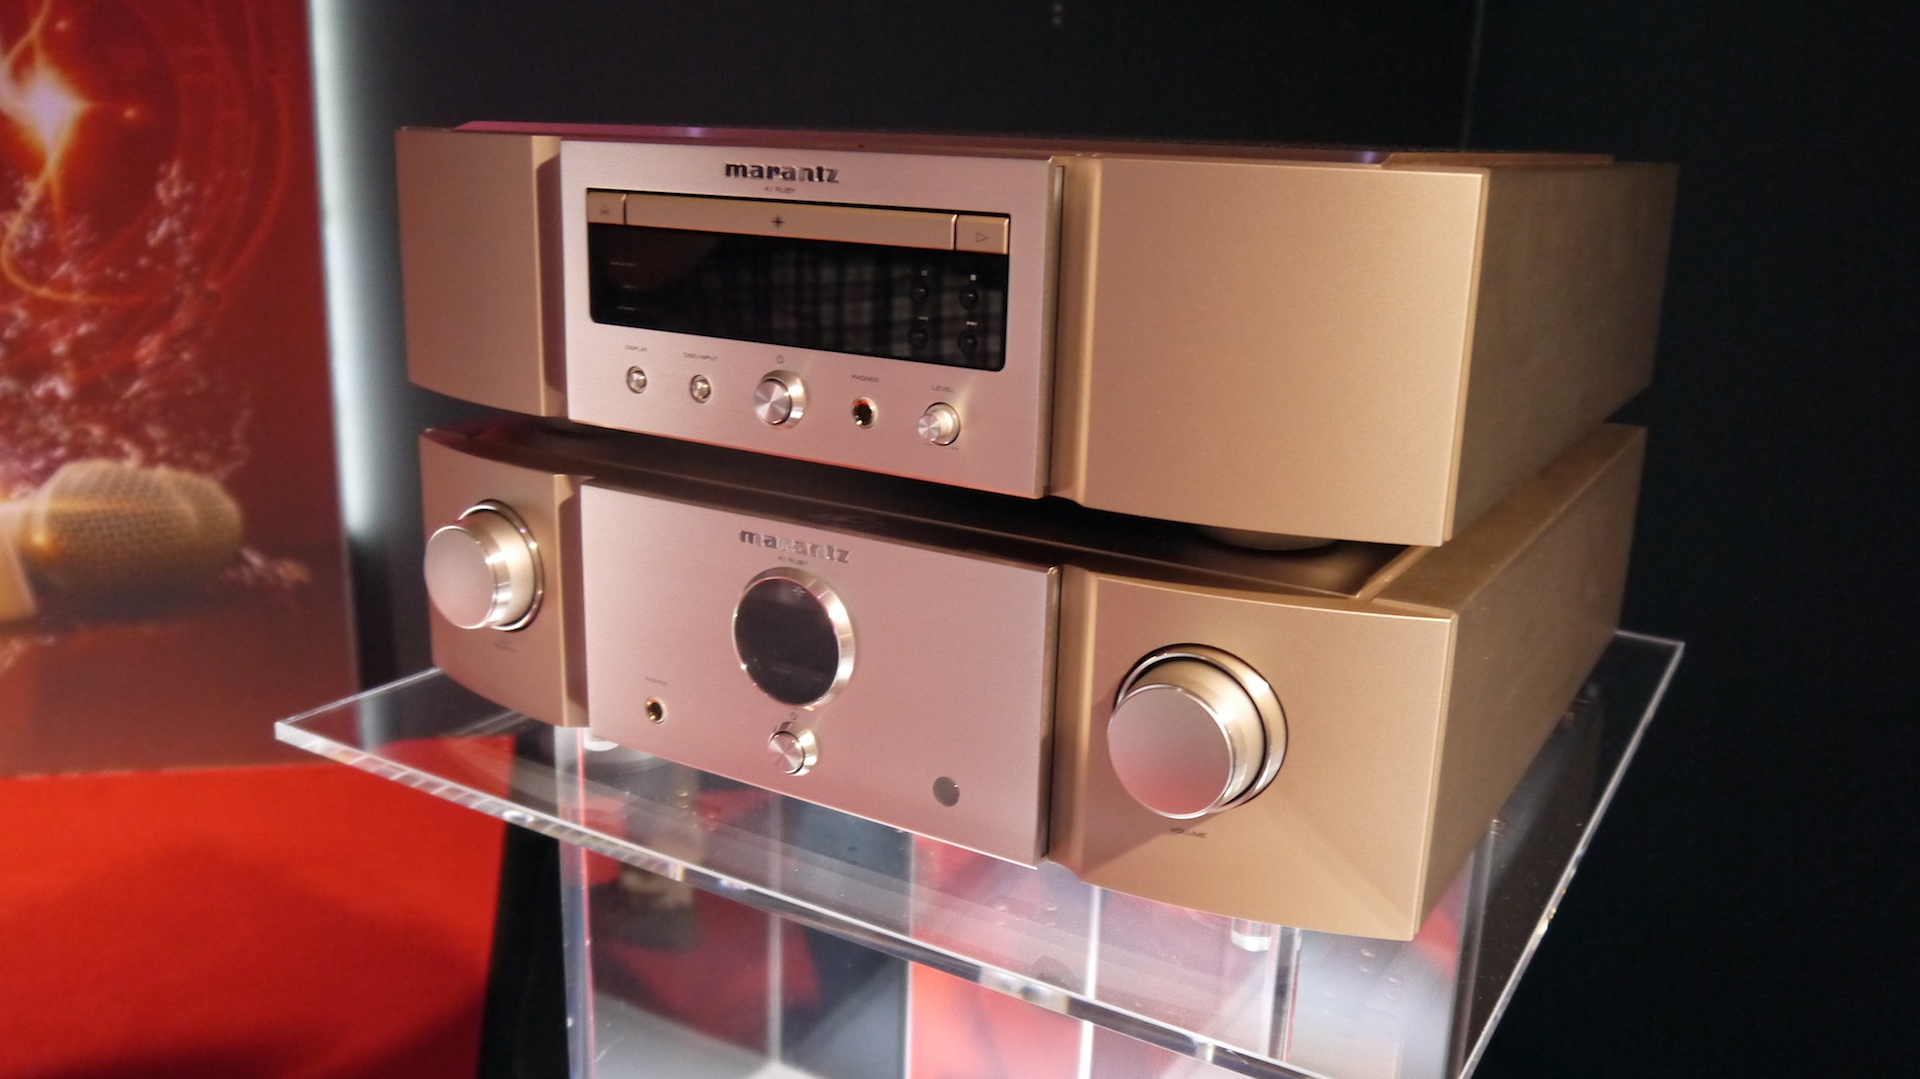 Marantz KI Ruby is a luxury CD player and amp for the most demanding